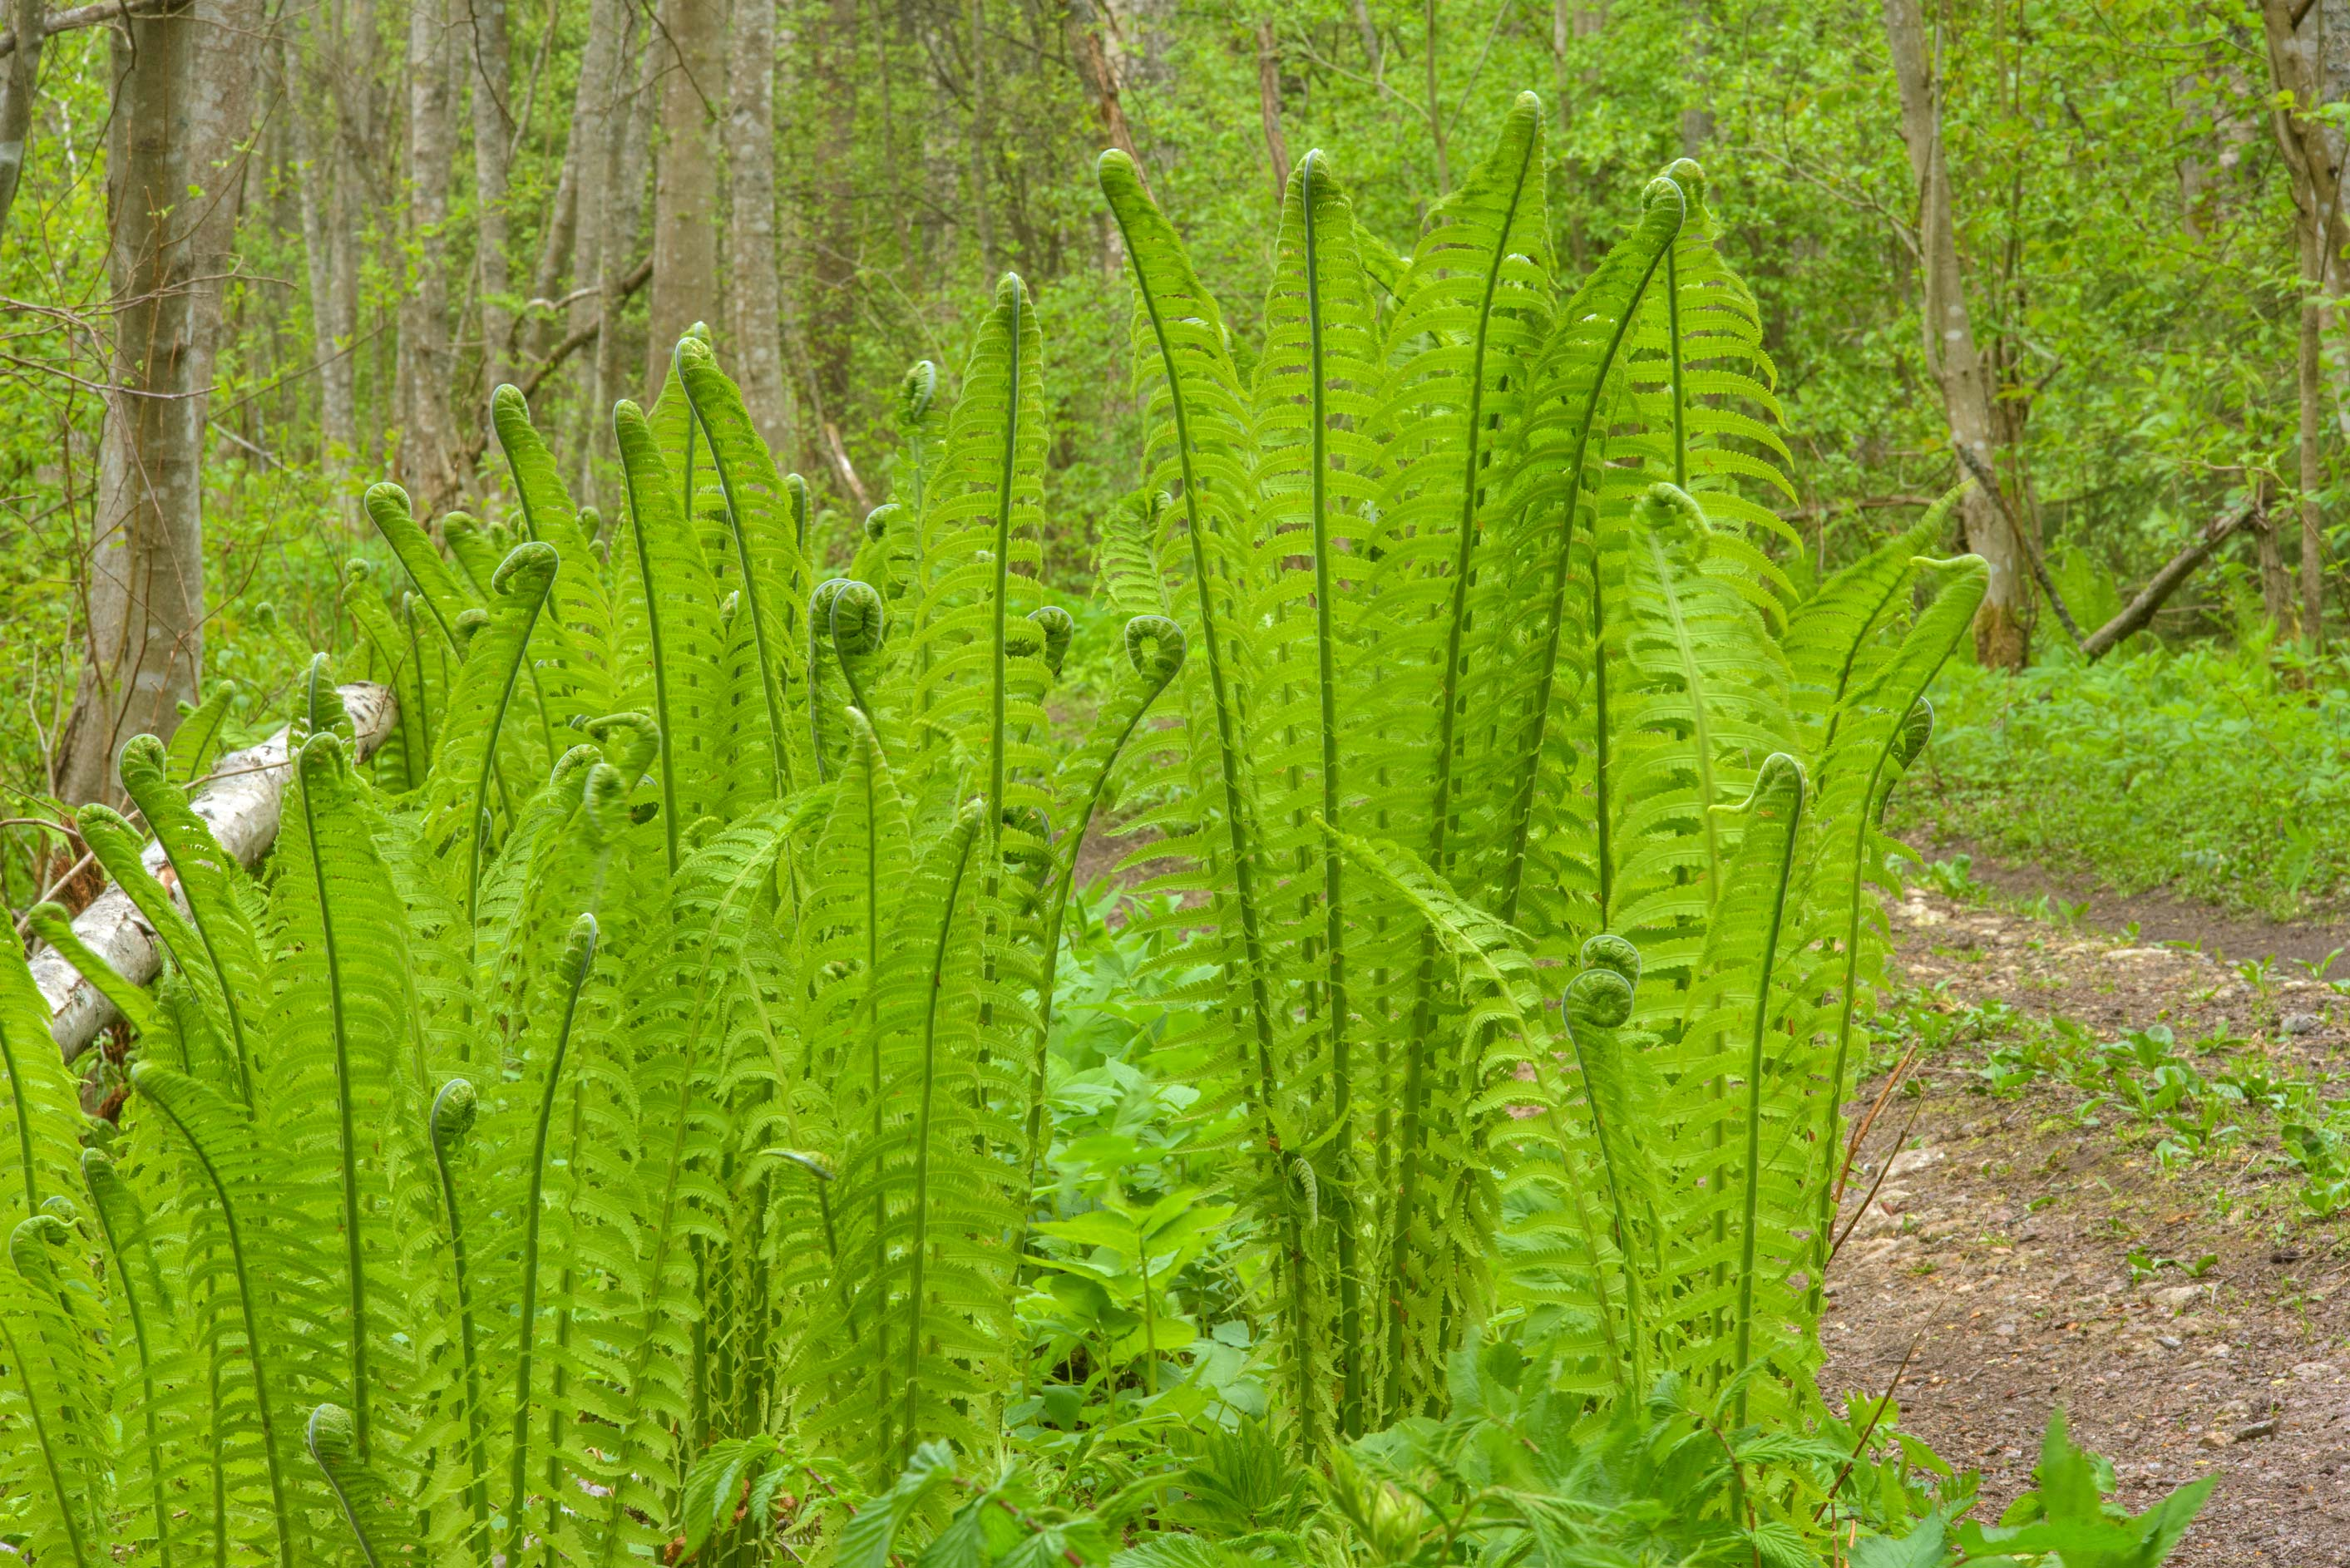 Young ferns near Dibuny, north-west from St.Petersburg, Russia